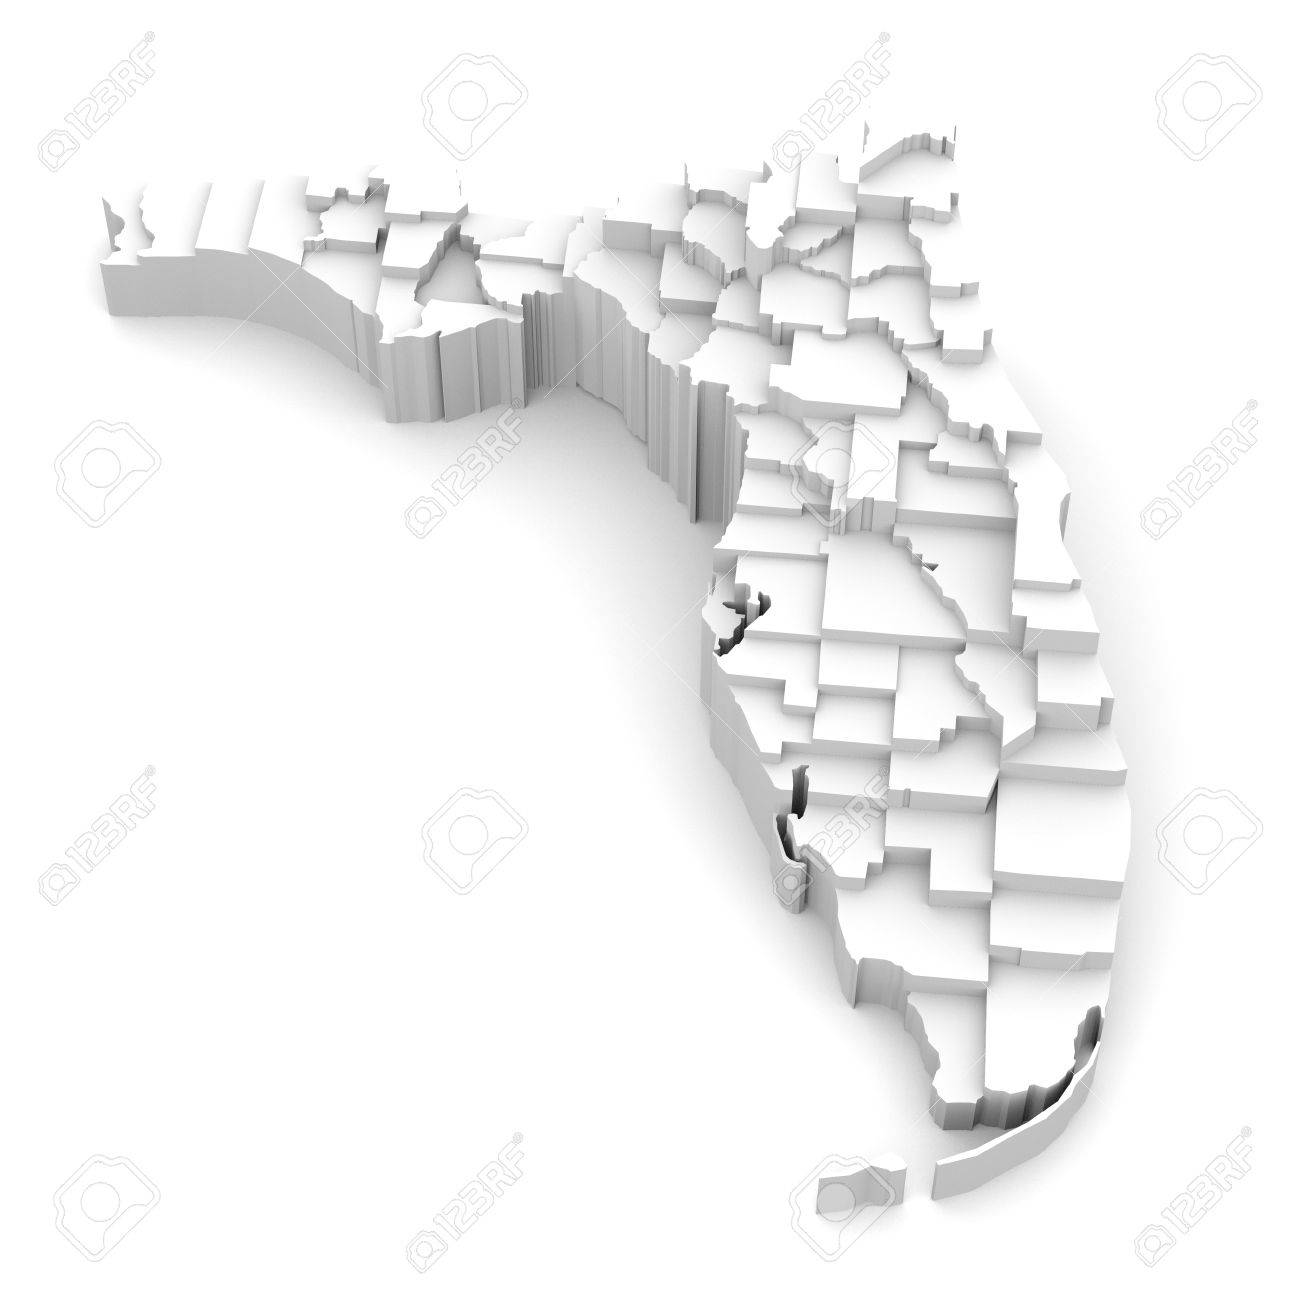 Florida Map By Counties In Various High Levels Abstraction Of - Florida map jigsaw puzzle